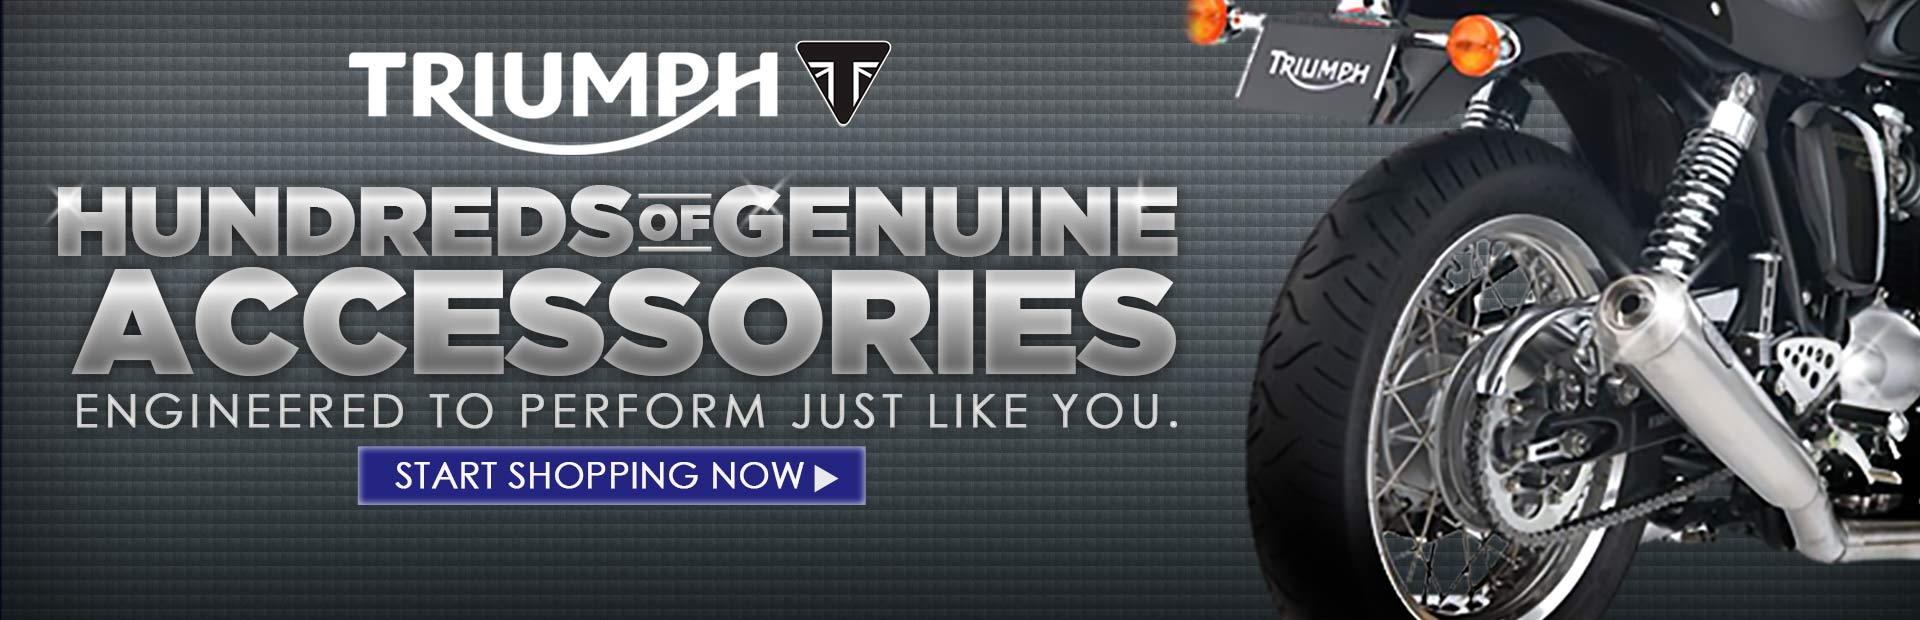 We have hundreds of genuine Triumph accessories! Click here to start shopping now.